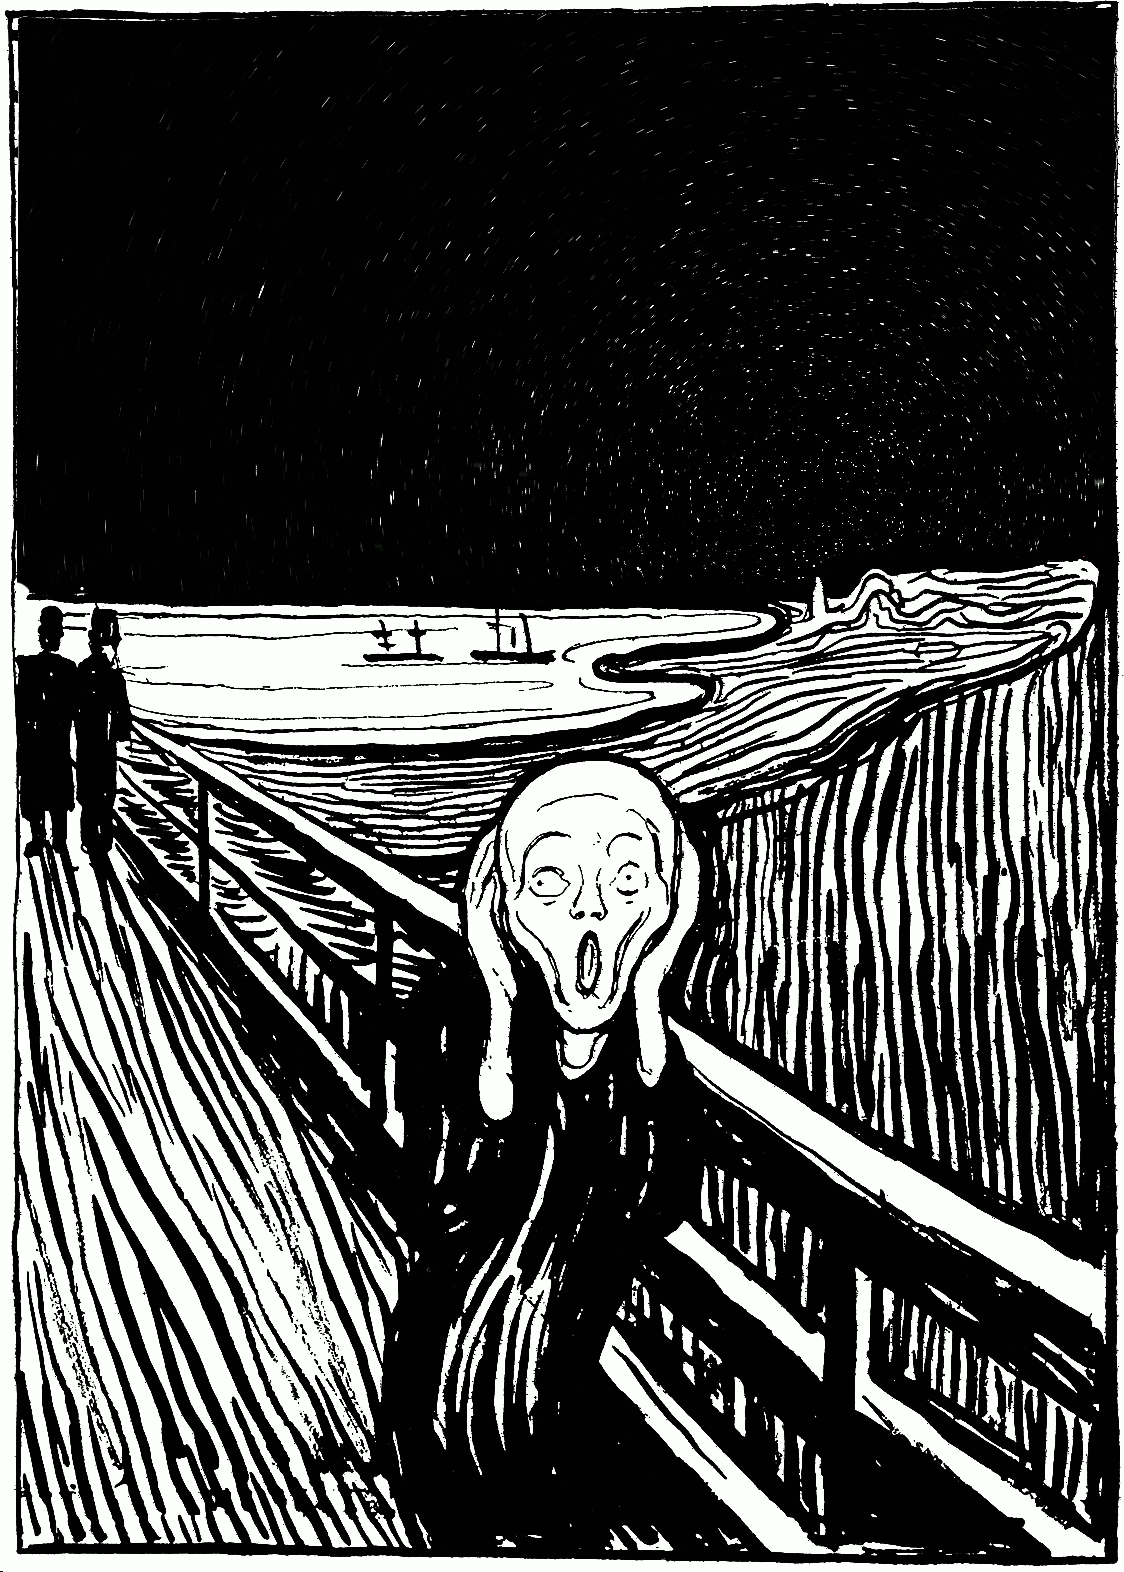 This version adapts the 1985 lithograph print version of The Scream by replacing the sky with a time-skewed starry sky, with low, hazy clouds on the horizon. The Screamer is still in the fireground, screaming.